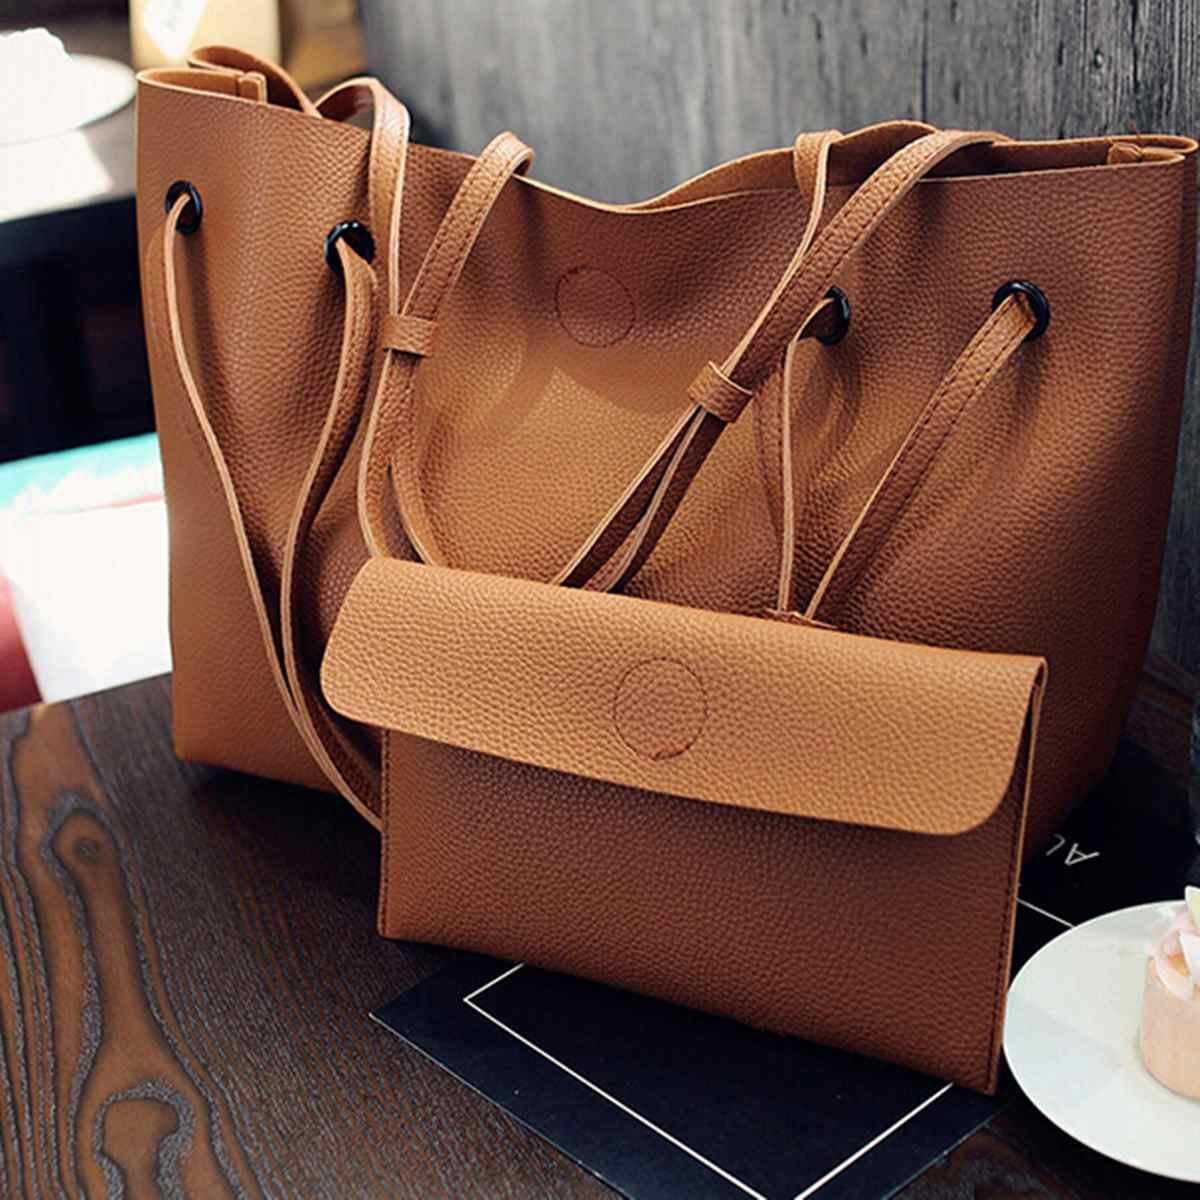 Female Hand Bag 2Pcs Fashion Women Luxury Handbag Large Tote Purse  Crossbody Satchel Pu Leather Shoulder Messenger Bag Brown